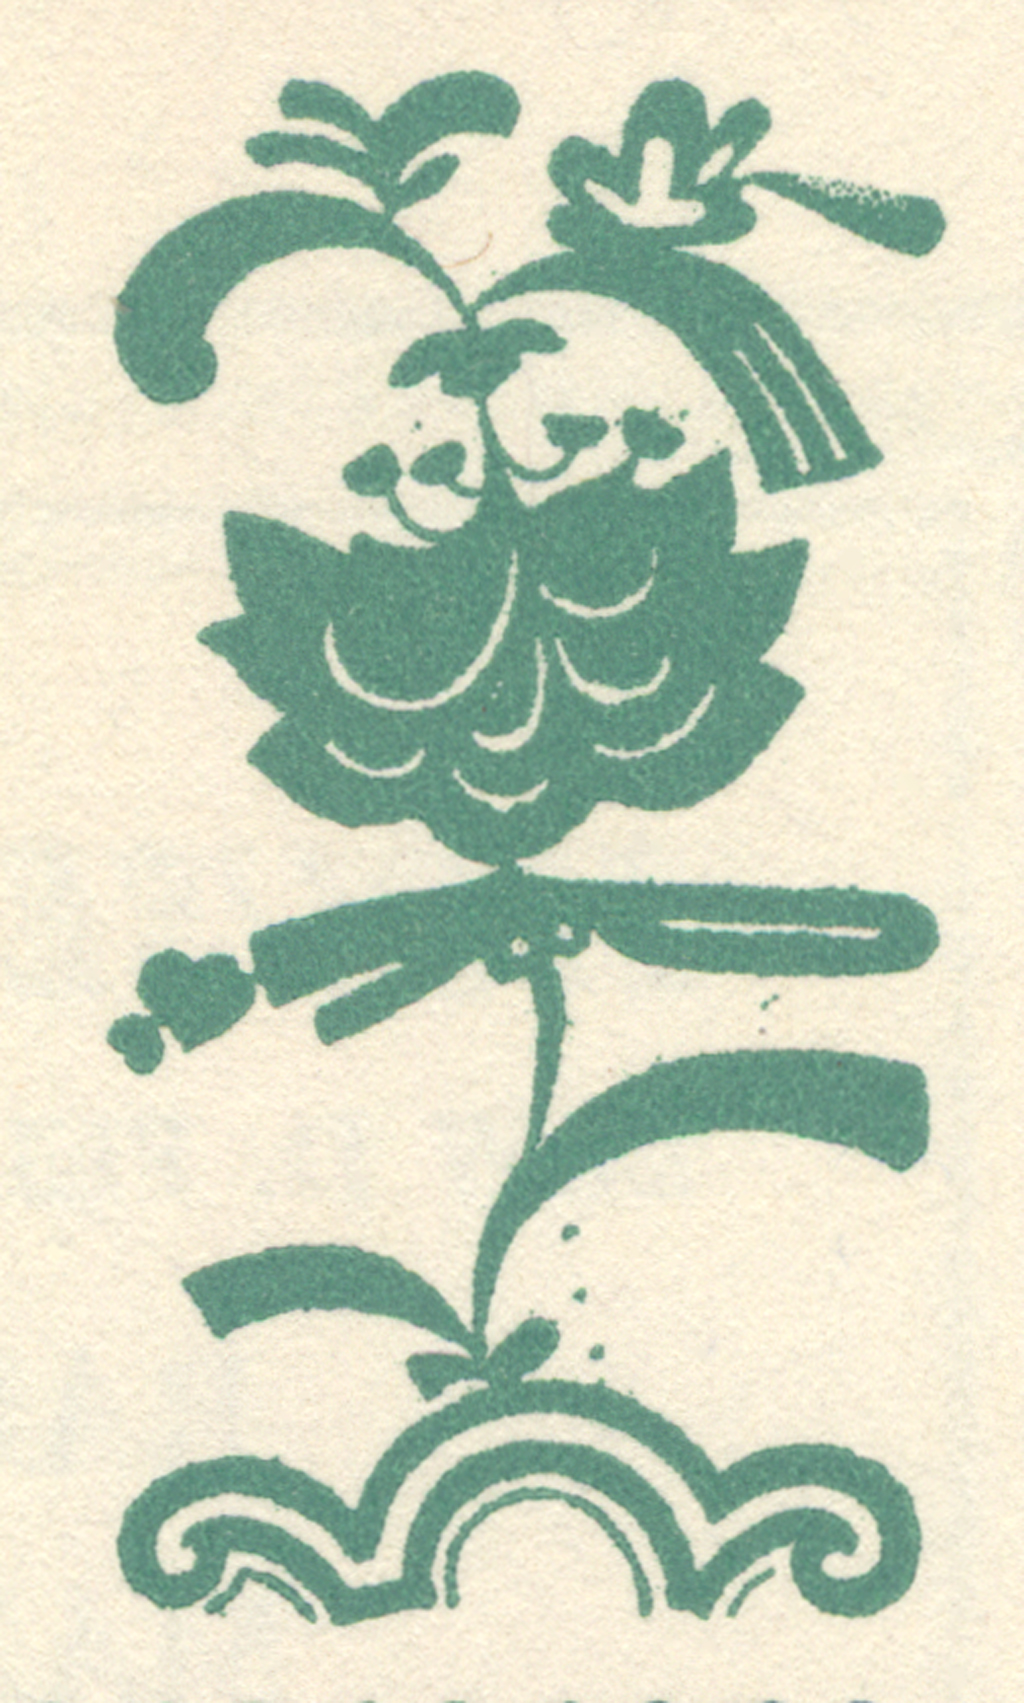 "Left ornament from ""The Court of Appeals"" in The New Colophon vol. Ii, part 8 (February 1950). Design by W.A. Dwiggins."